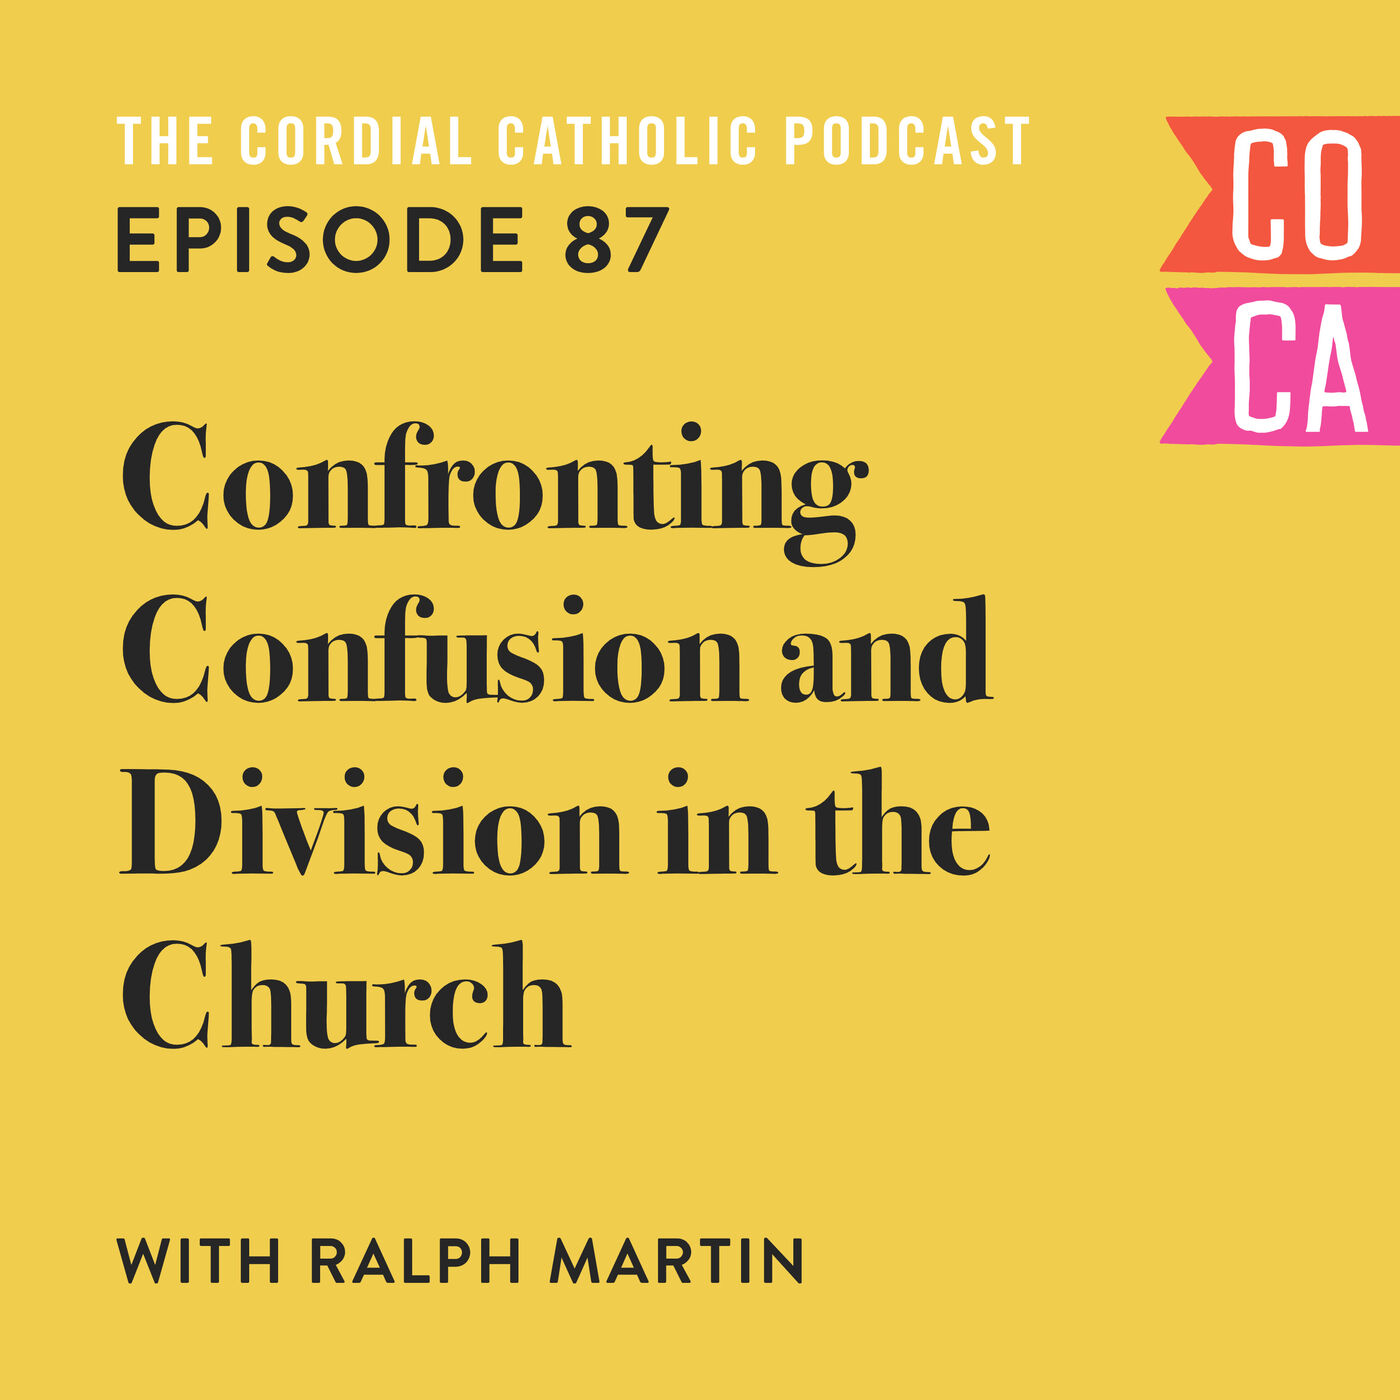 087: Confronting Confusion and Division in the Church (w/ Ralph Martin)